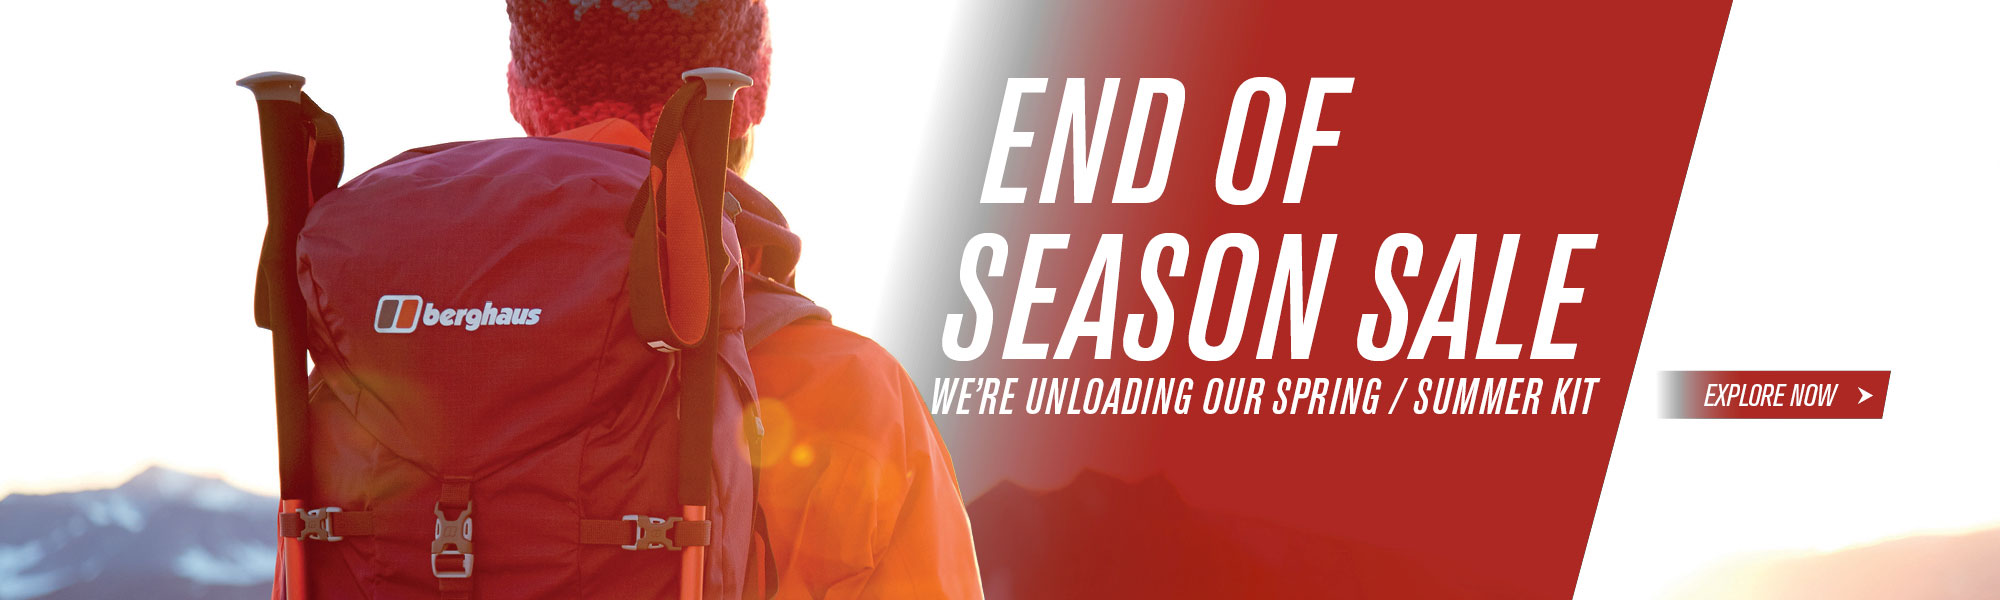 Berghaus: up to 40% off for outdoor clothing and equipment